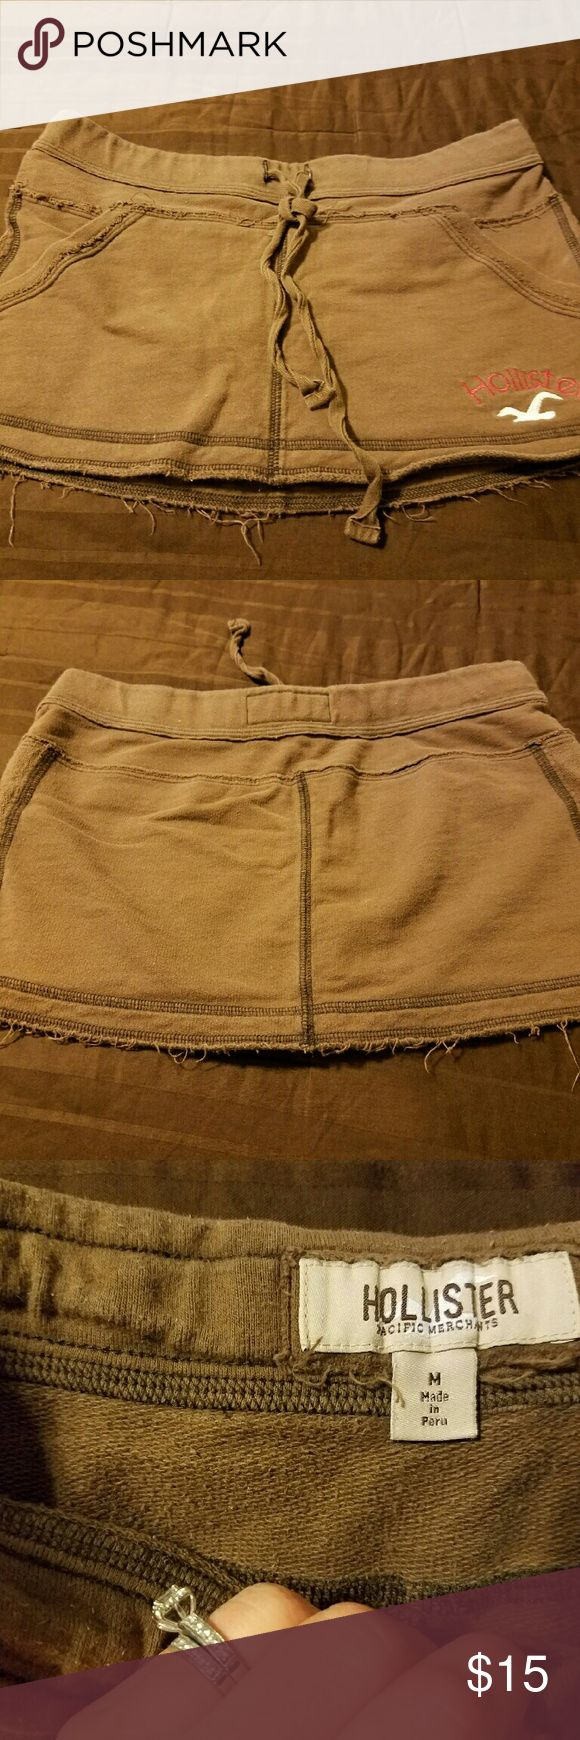 Hollister skirt Brown Hollister skirts cute and comfy! Size small Hollister Skirts Mini